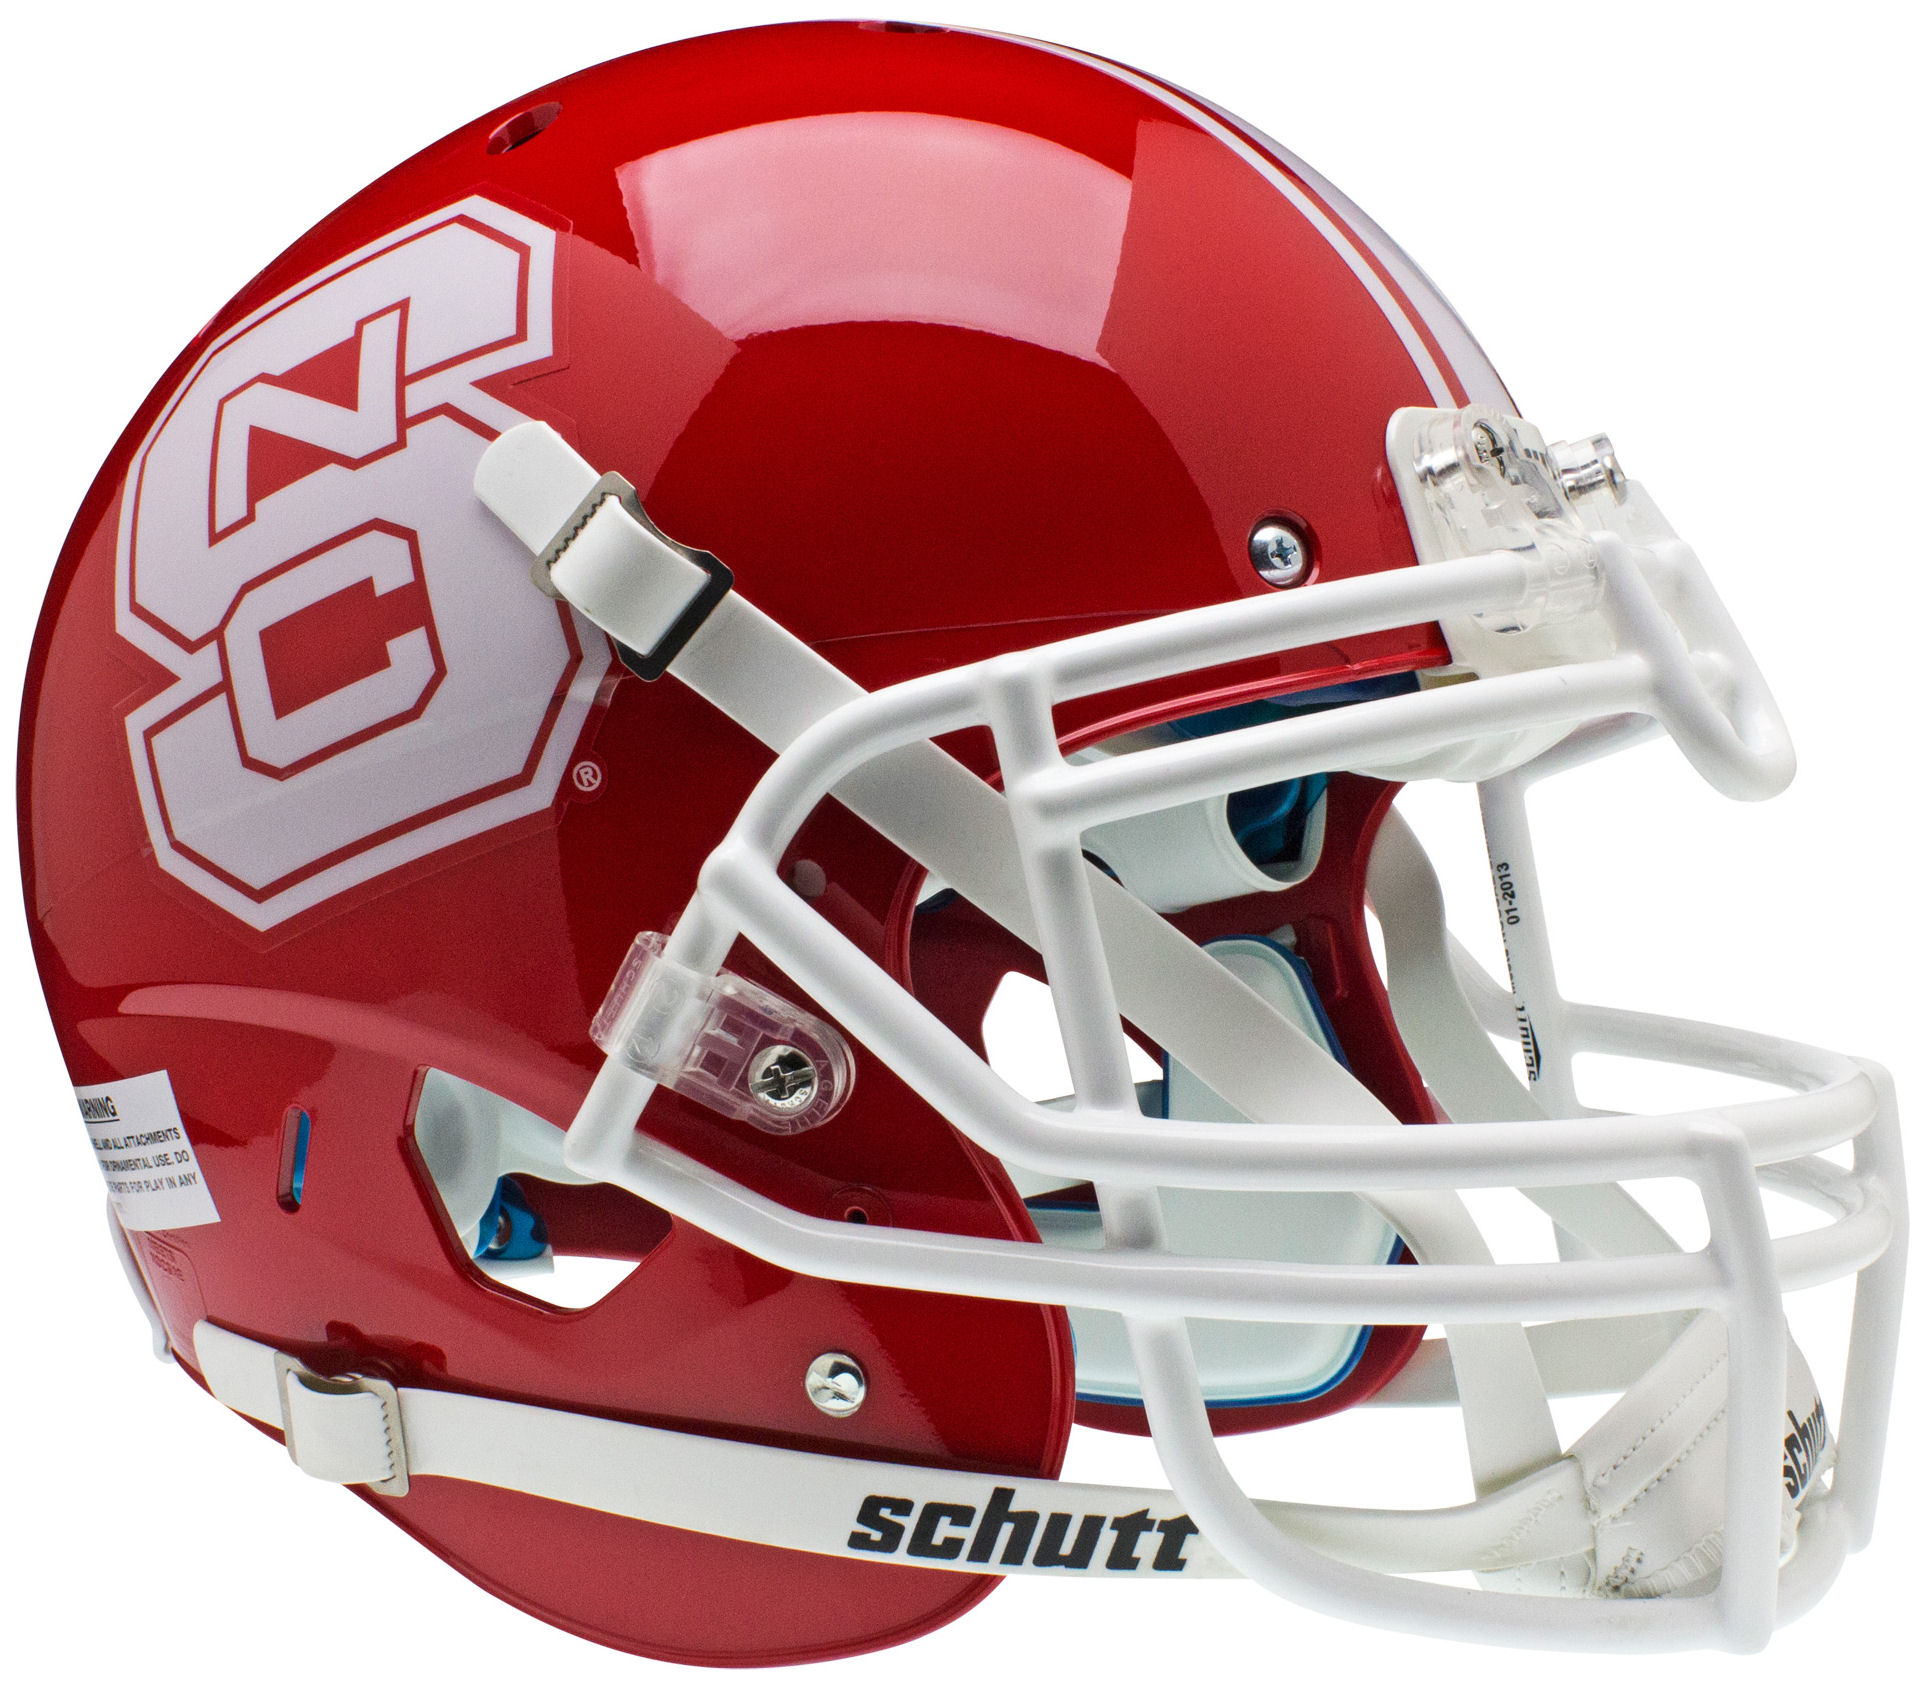 North Carolina State Wolfpack Authentic College XP Football Helmet Schutt <B>Red</B>